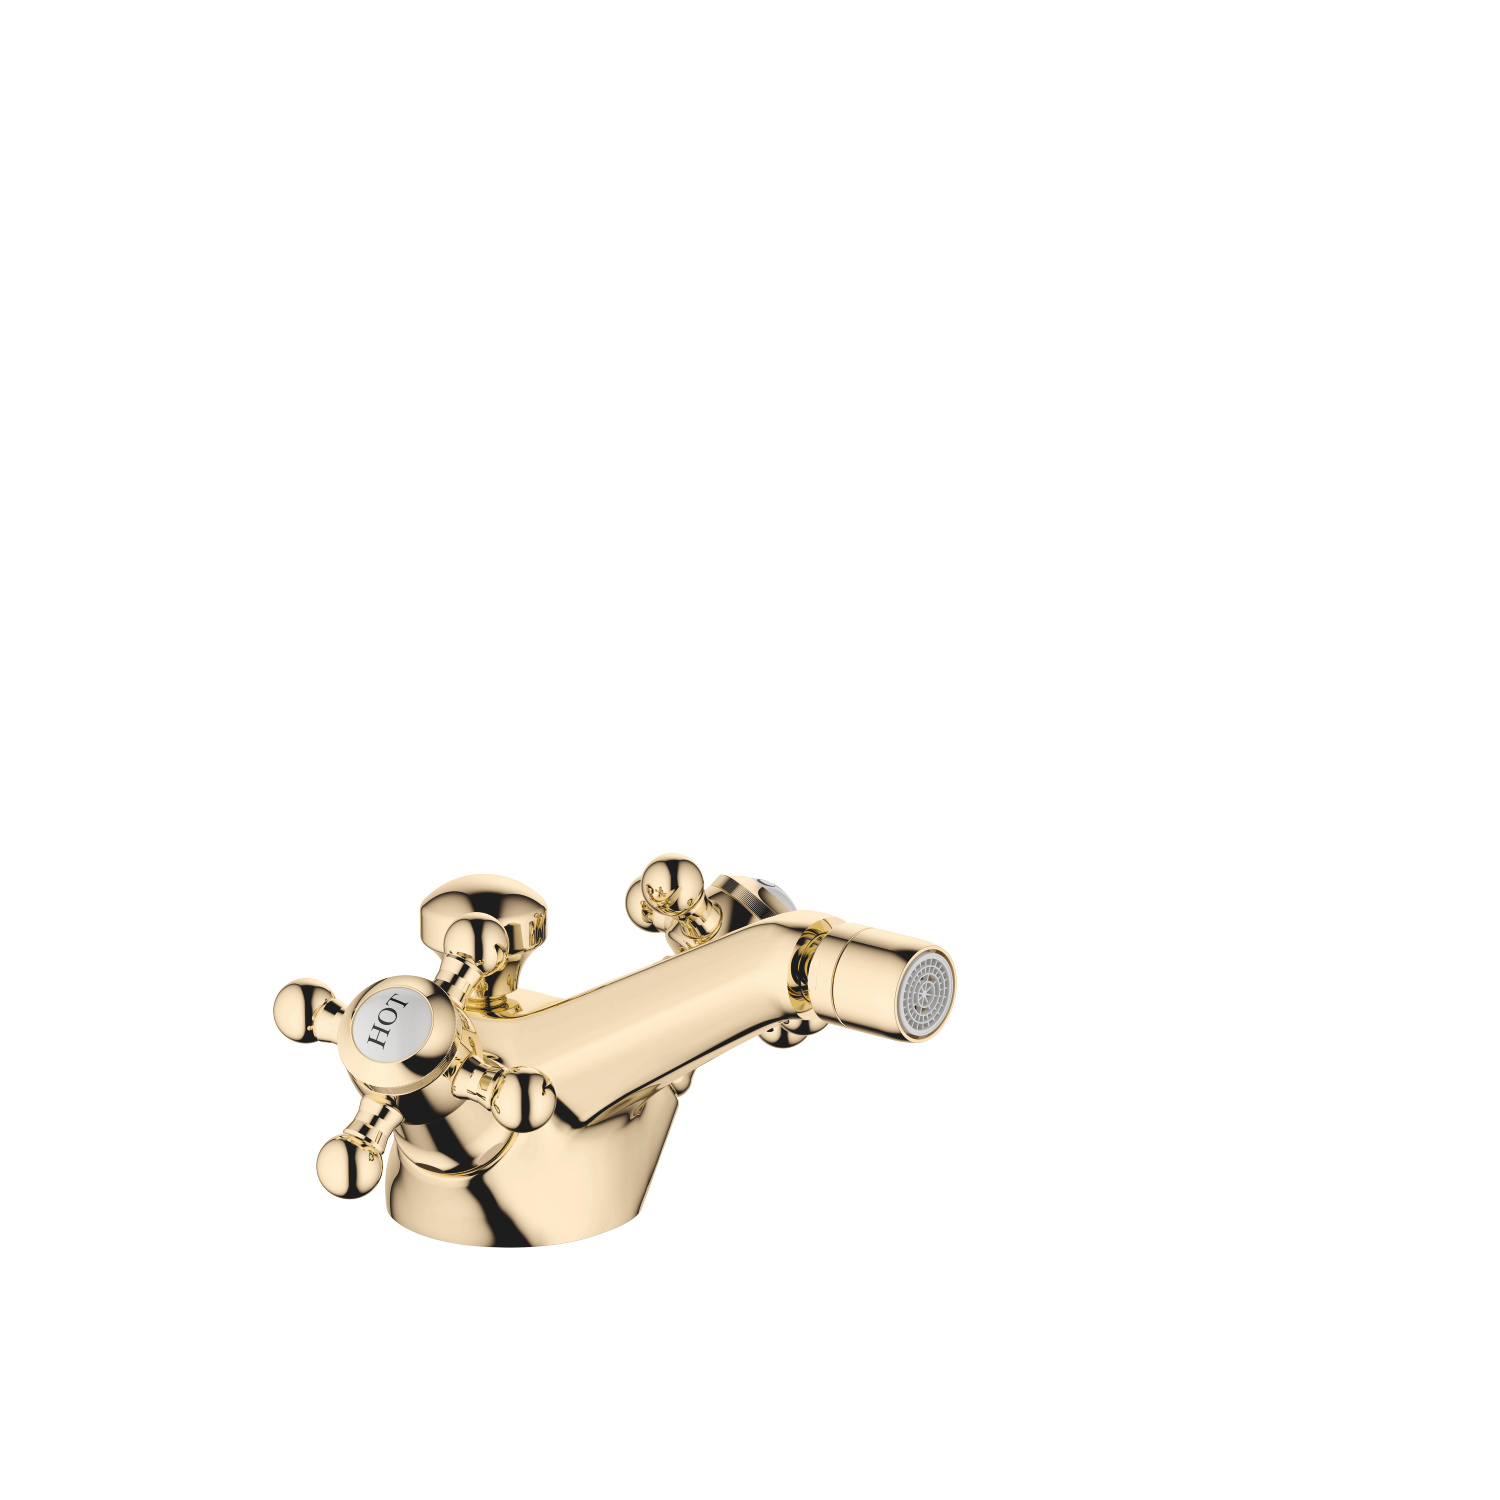 Single-hole bidet mixer with pop-up waste - Durabrass - 24 510 360-09